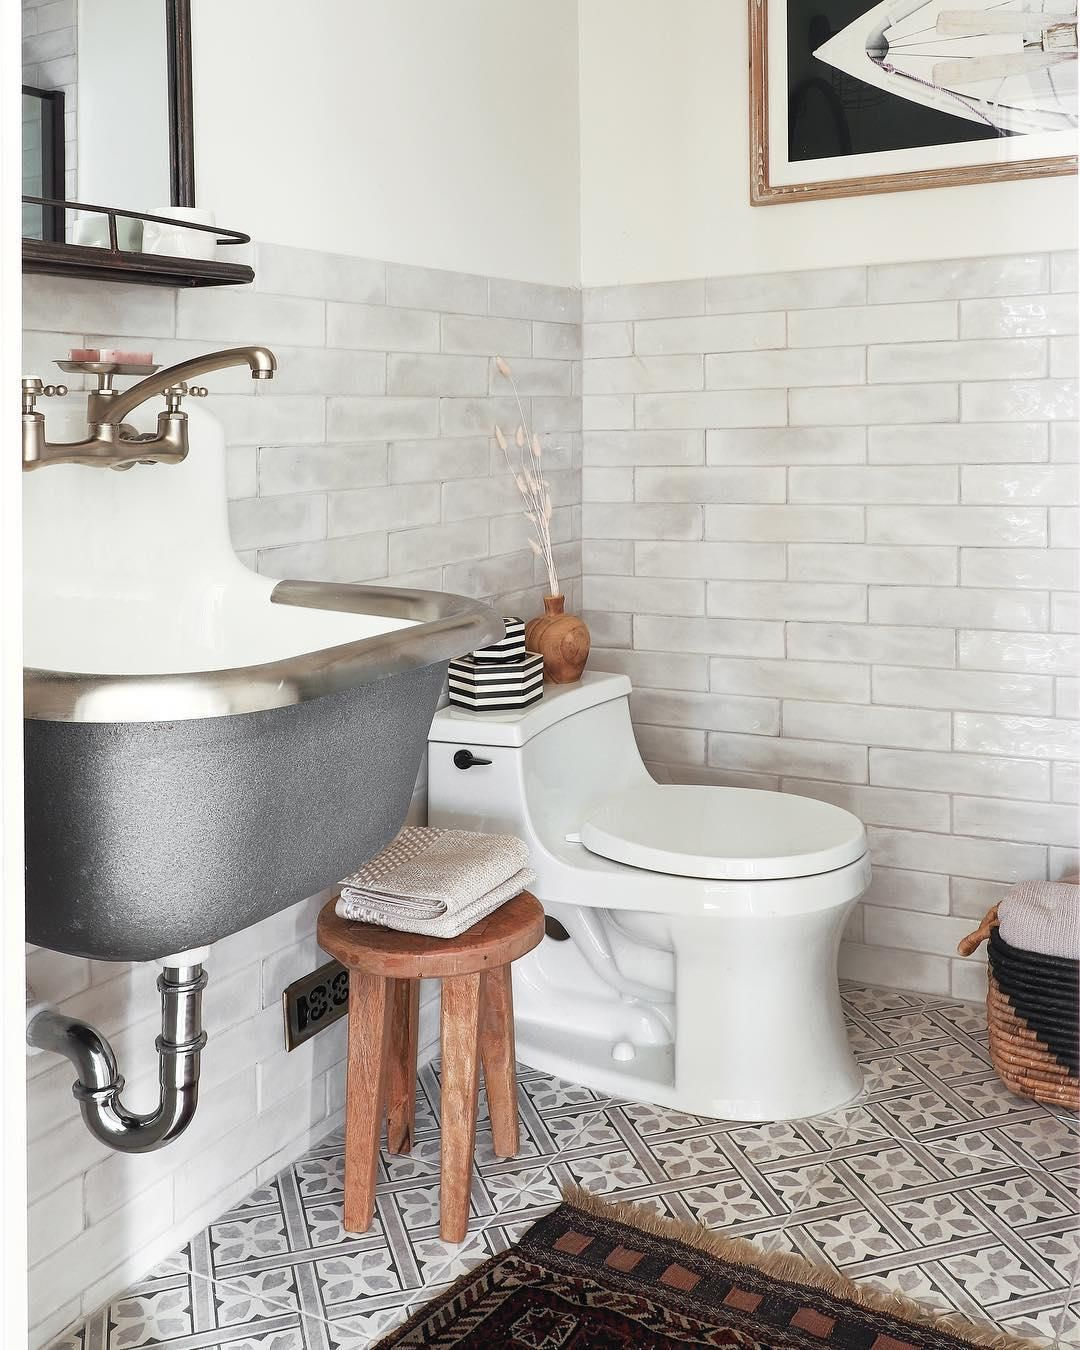 Tried And True Wall And Floor Tile Combinations The Tile Shop Blog The Tile Shop Bathroom Trends Tile Bathroom